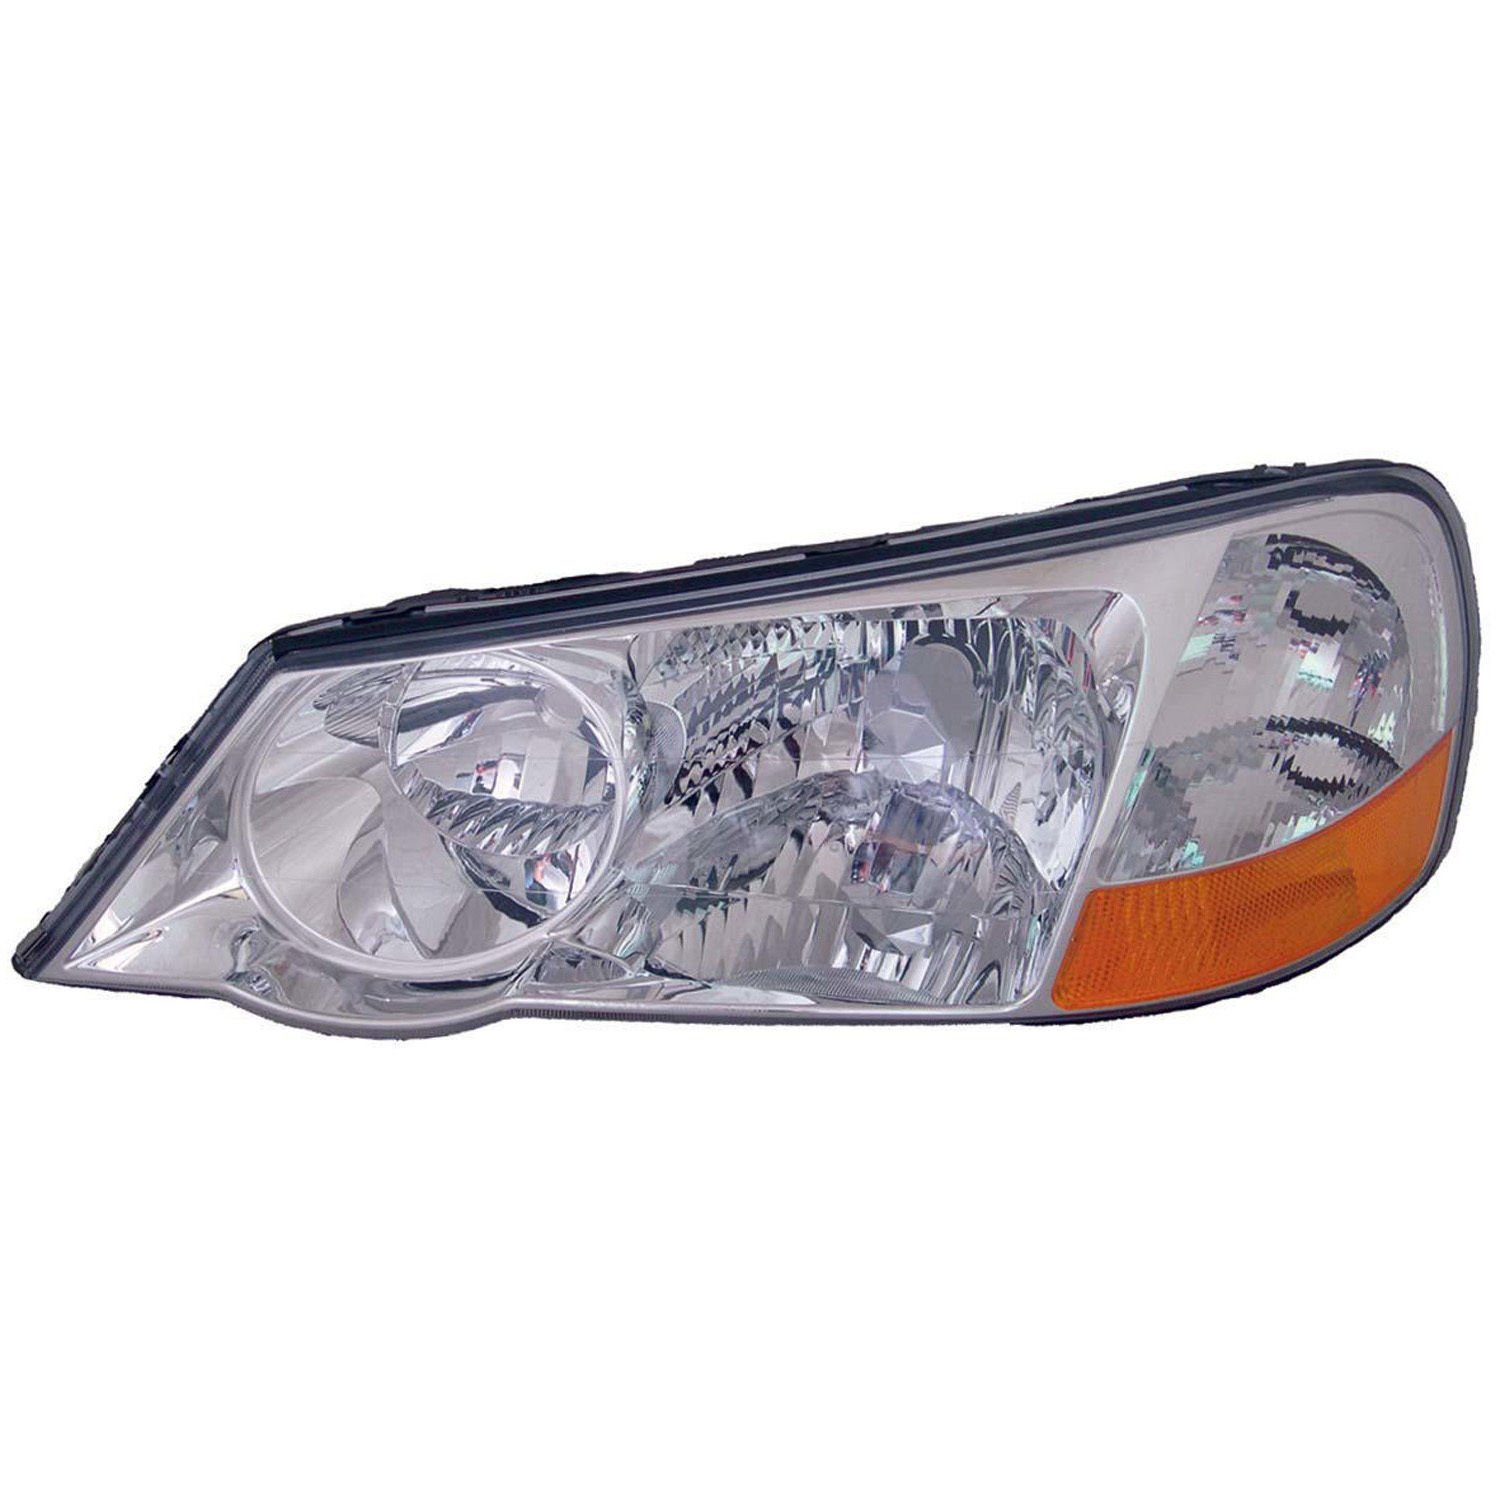 TYC 20-6430-01-1 Acura TL Left Replacement Head Lamp